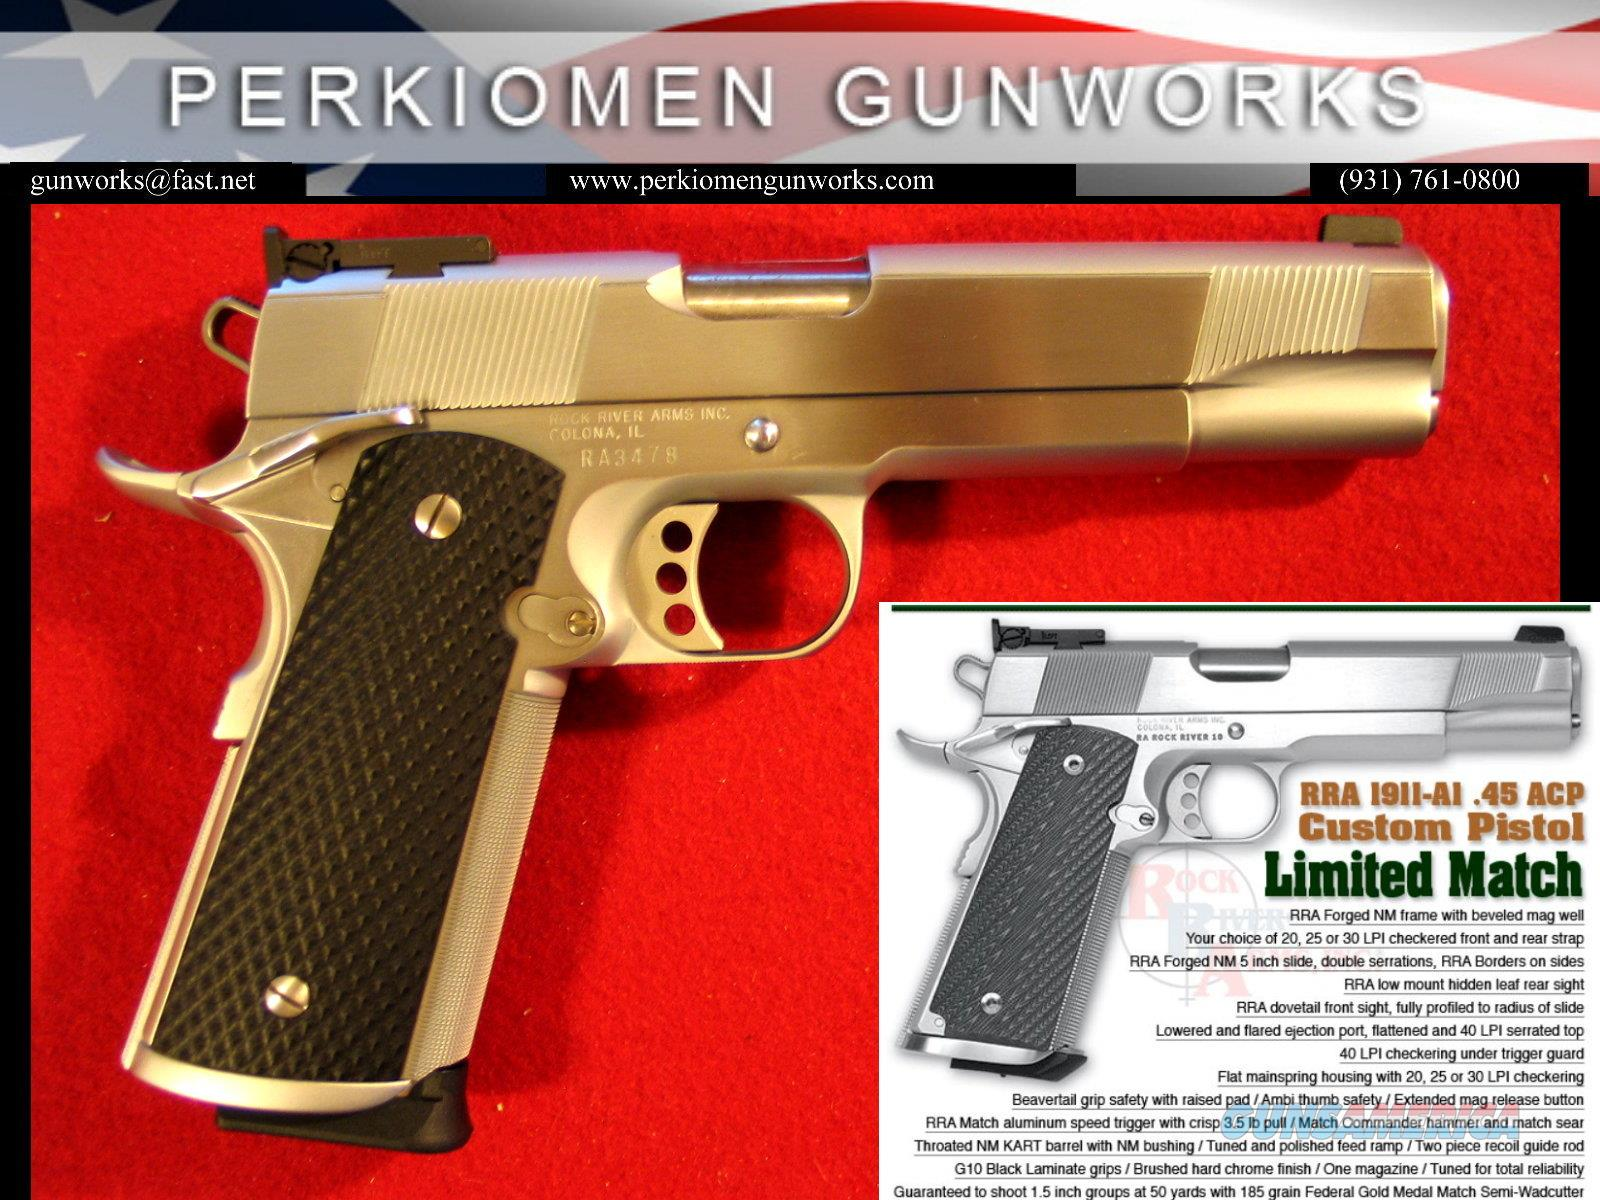 1911-A1 Custom Limited Match, 45acp, New in Box  Guns > Pistols > Rock River Arms Pistols